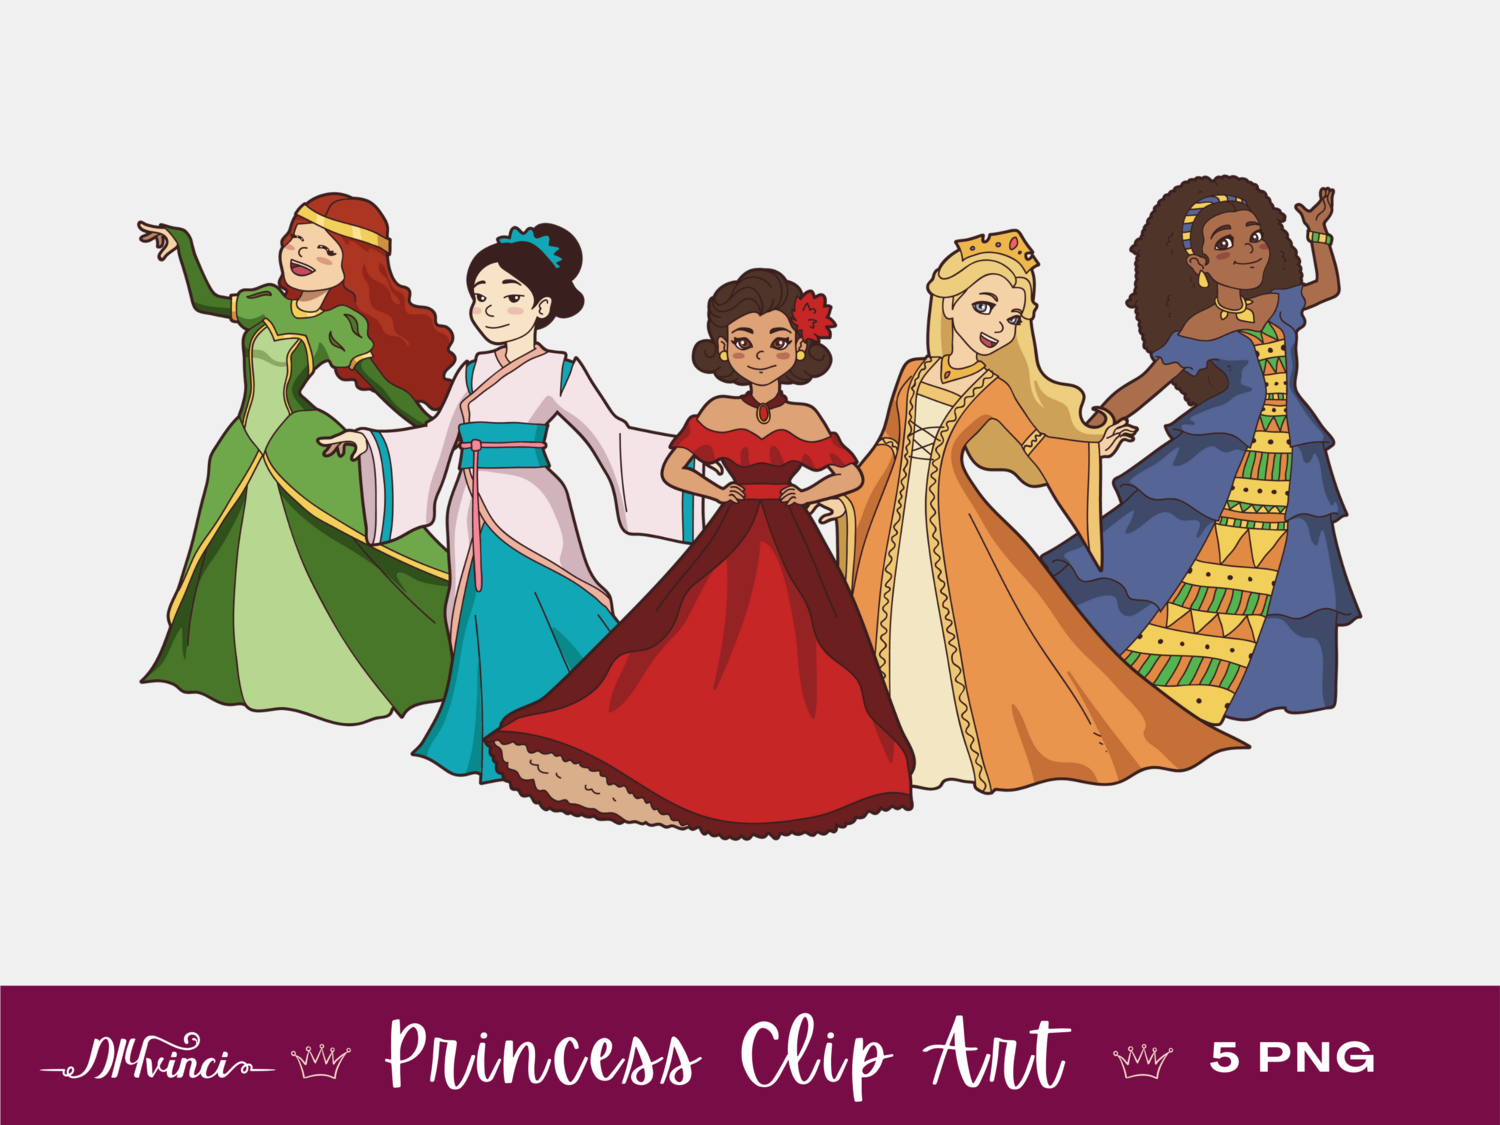 5 Princess Clip Art - PNG - Personal & Commercial Use